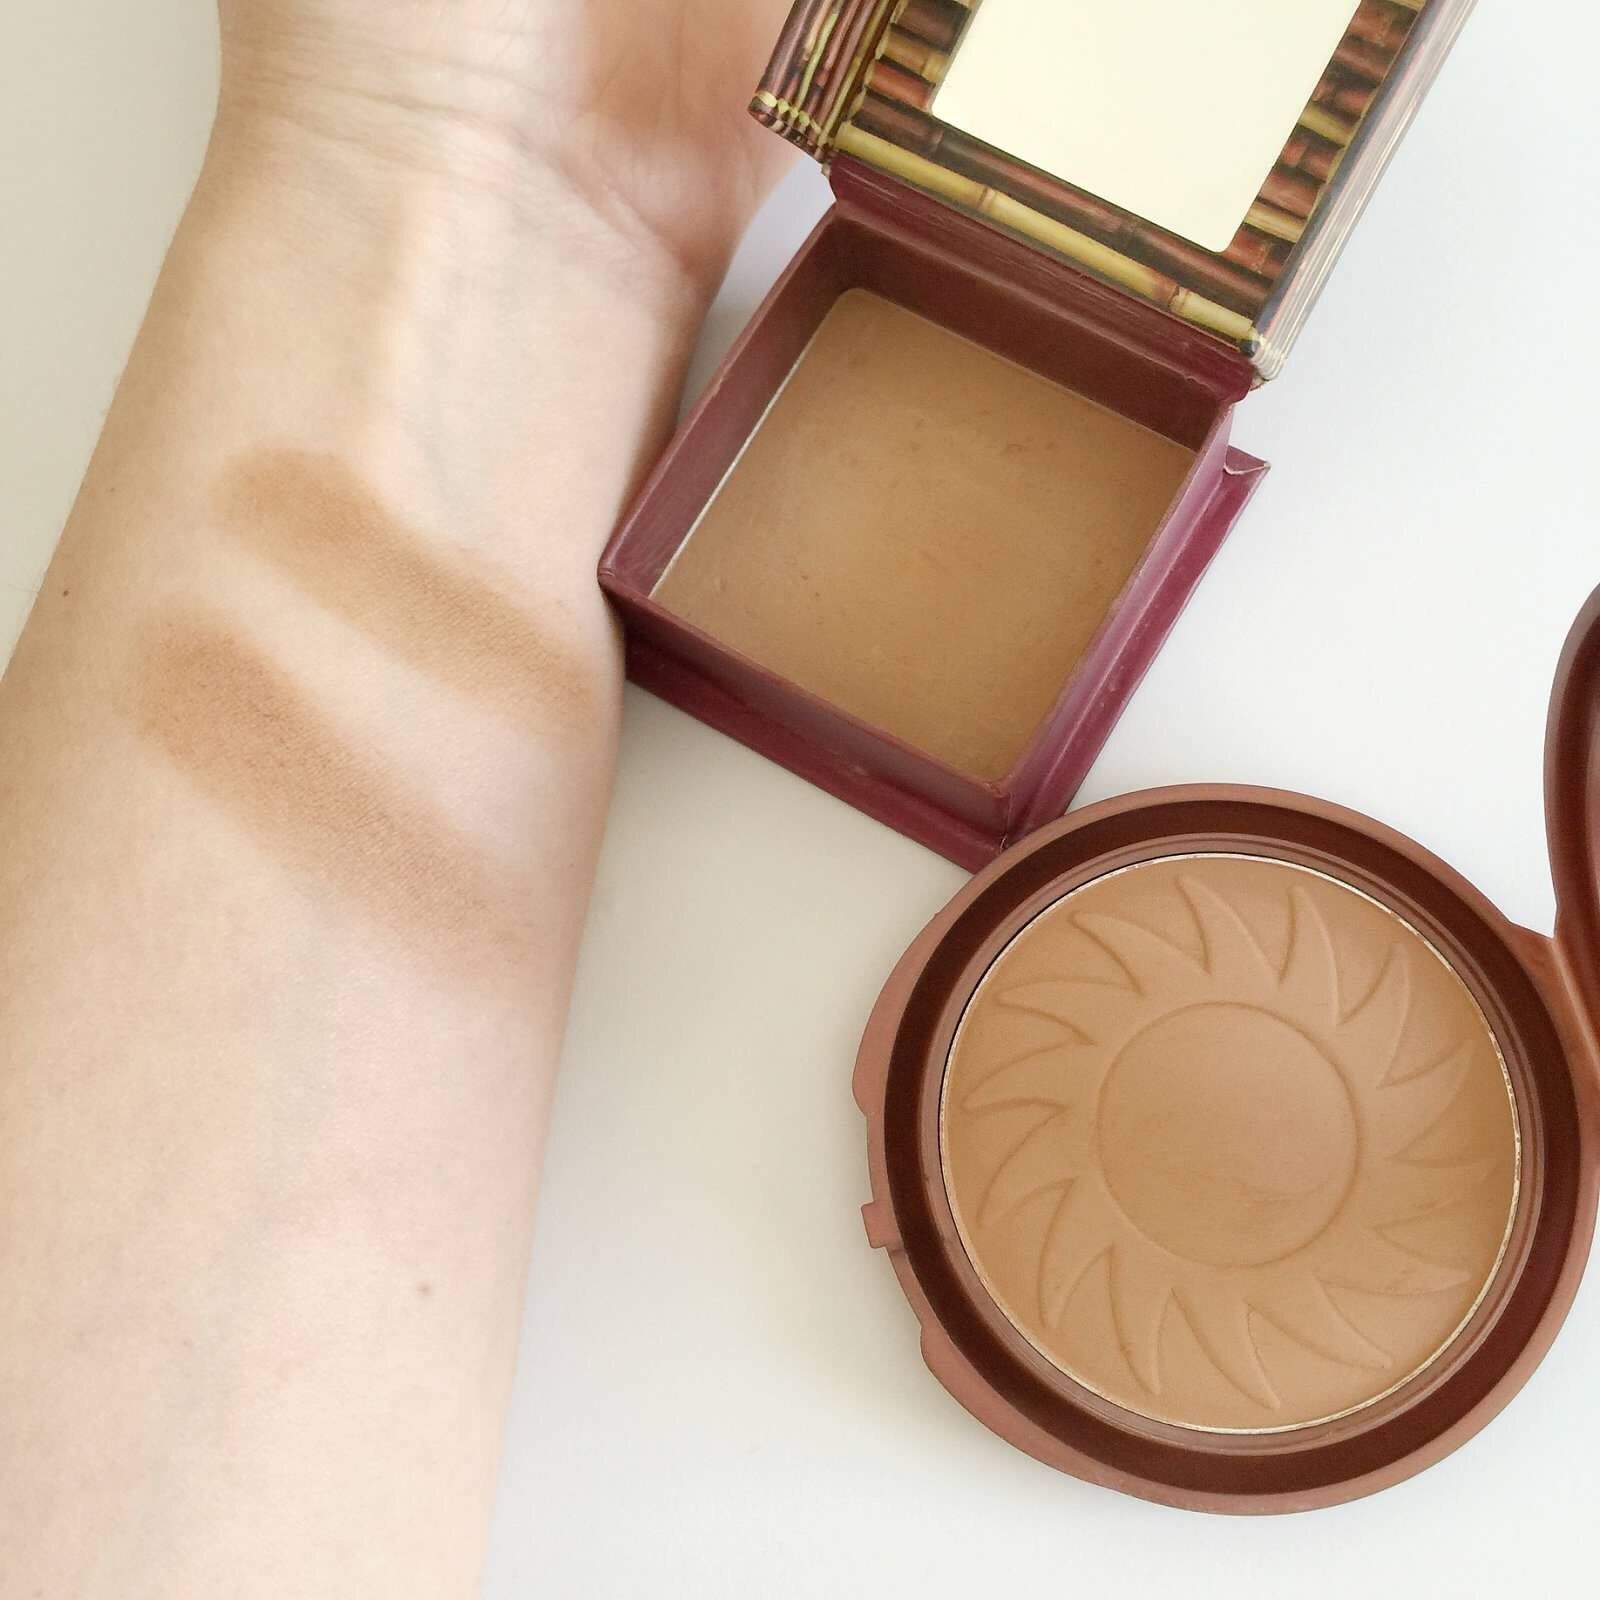 Hoola Dupe. NYC Sunny Bronzer love sunny Makeup dupes